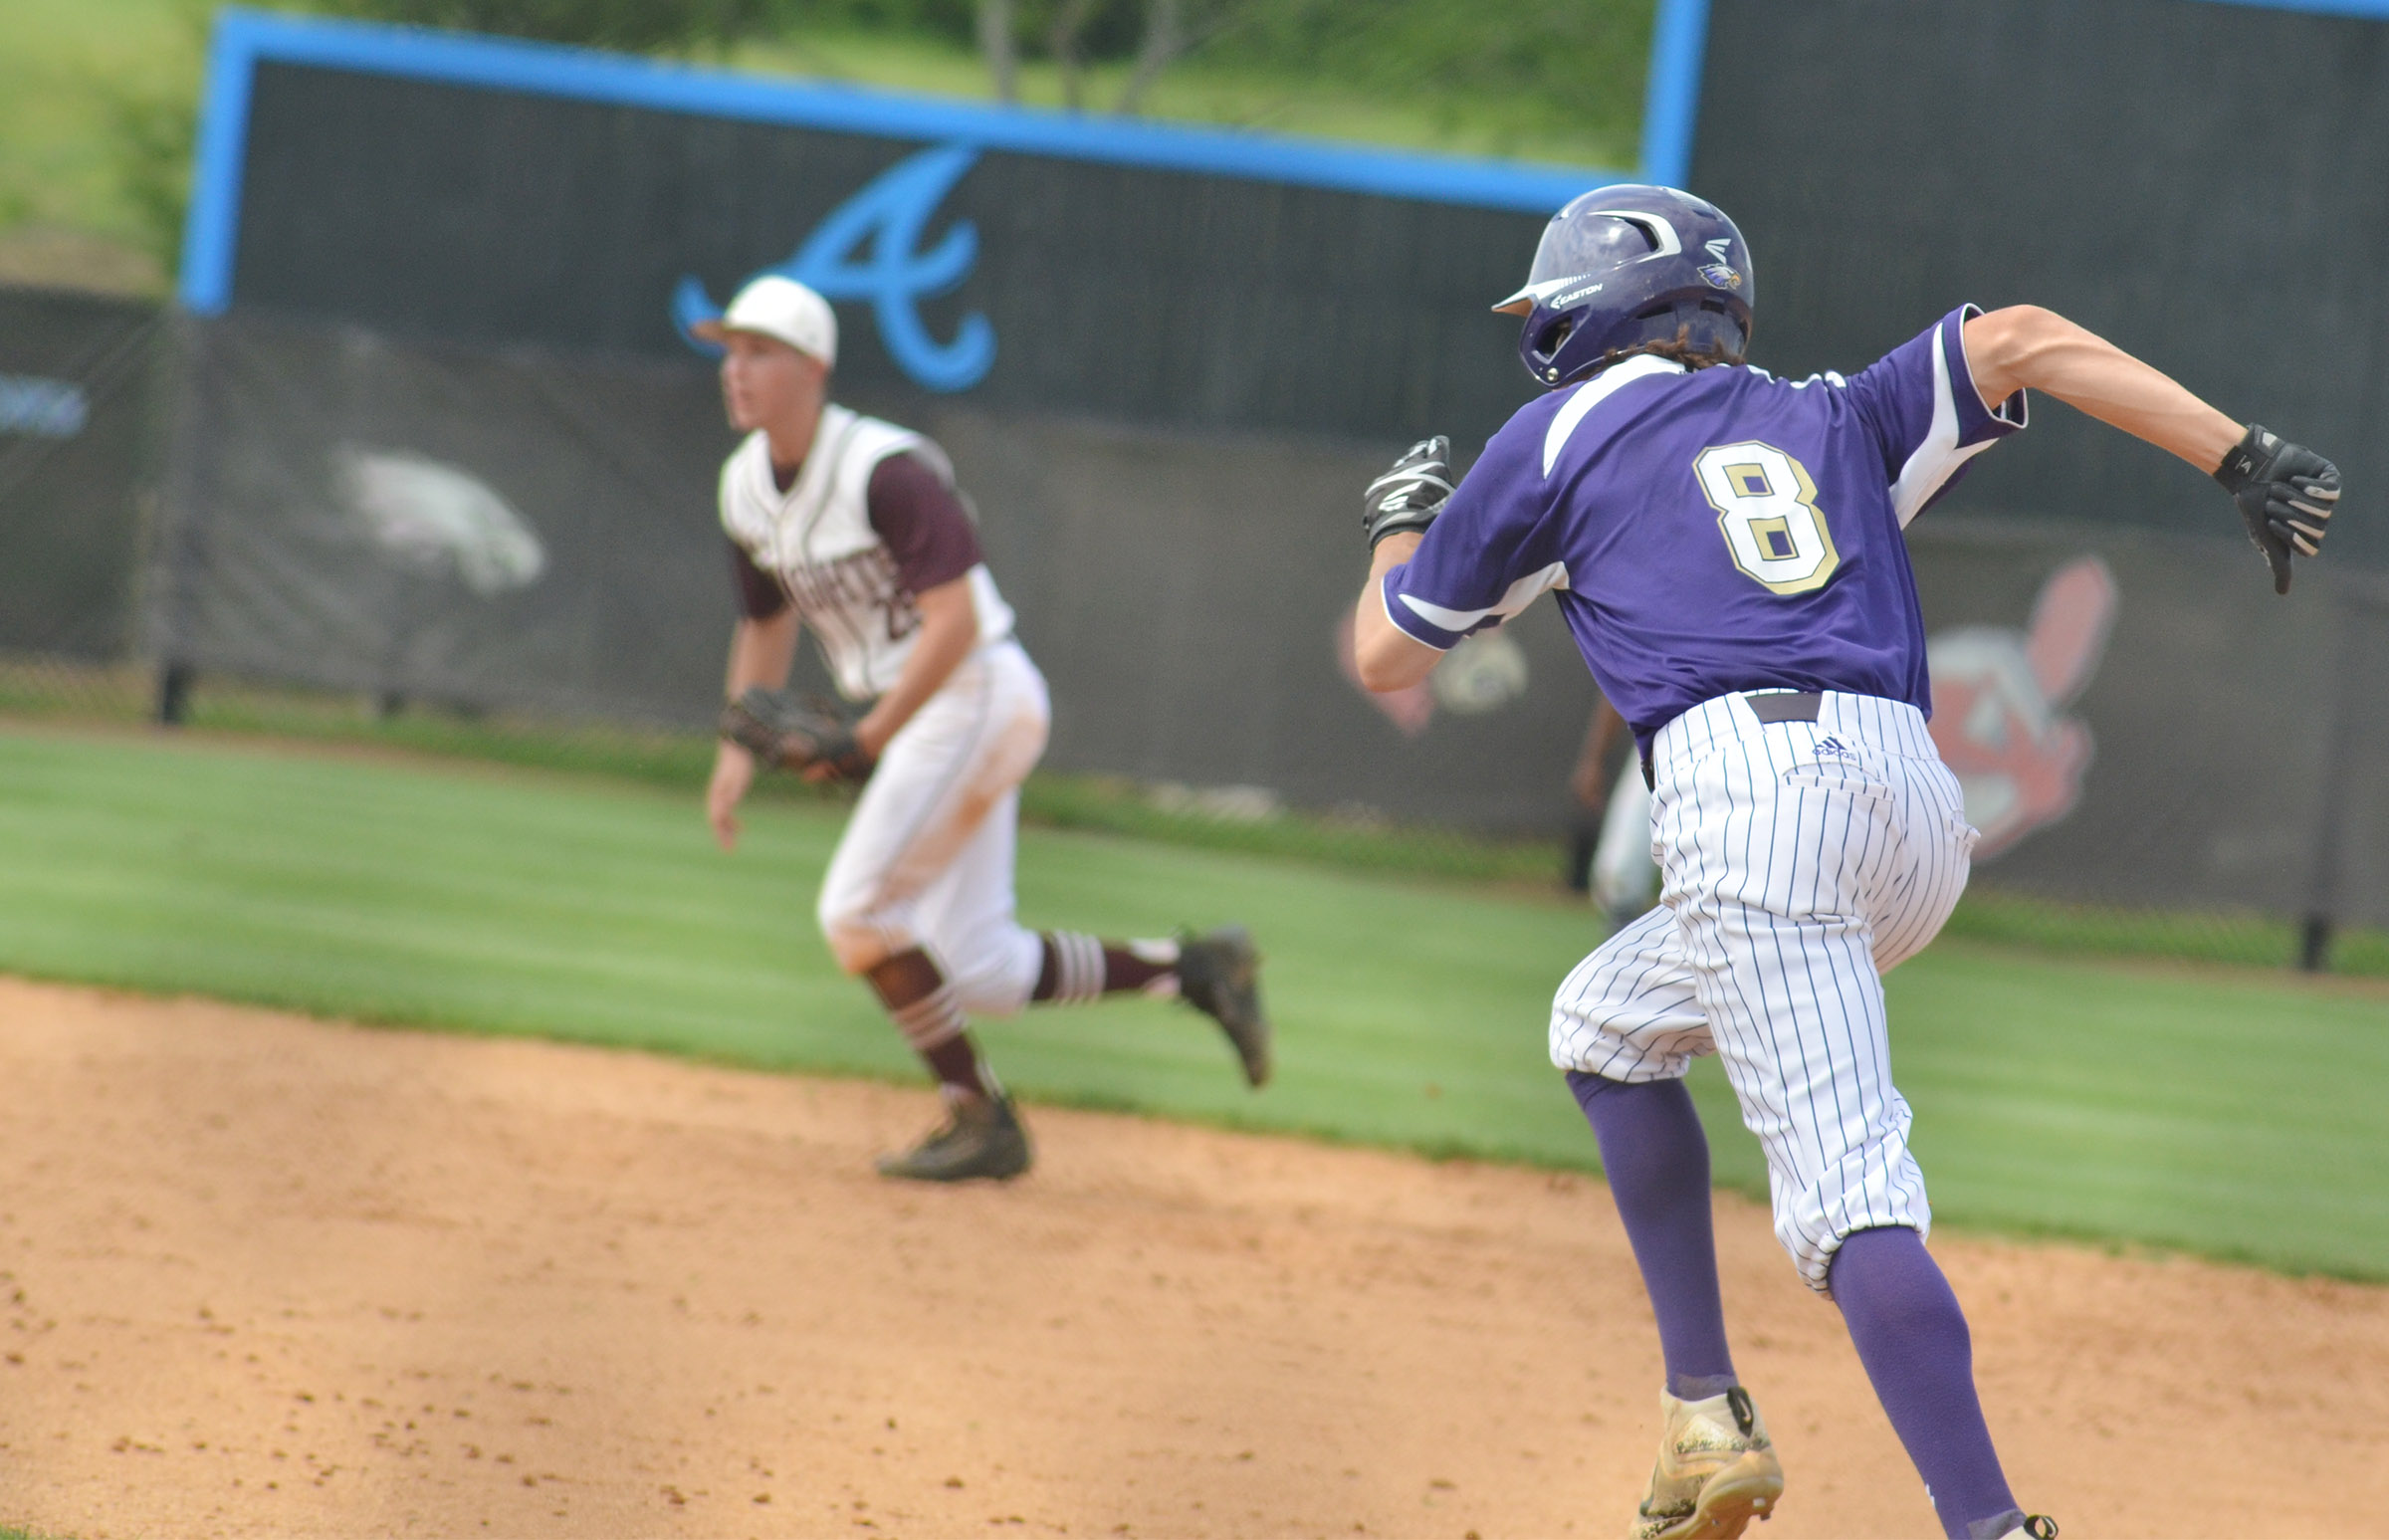 Campbellsville Middle School eighth-grader John Orberson steals second.